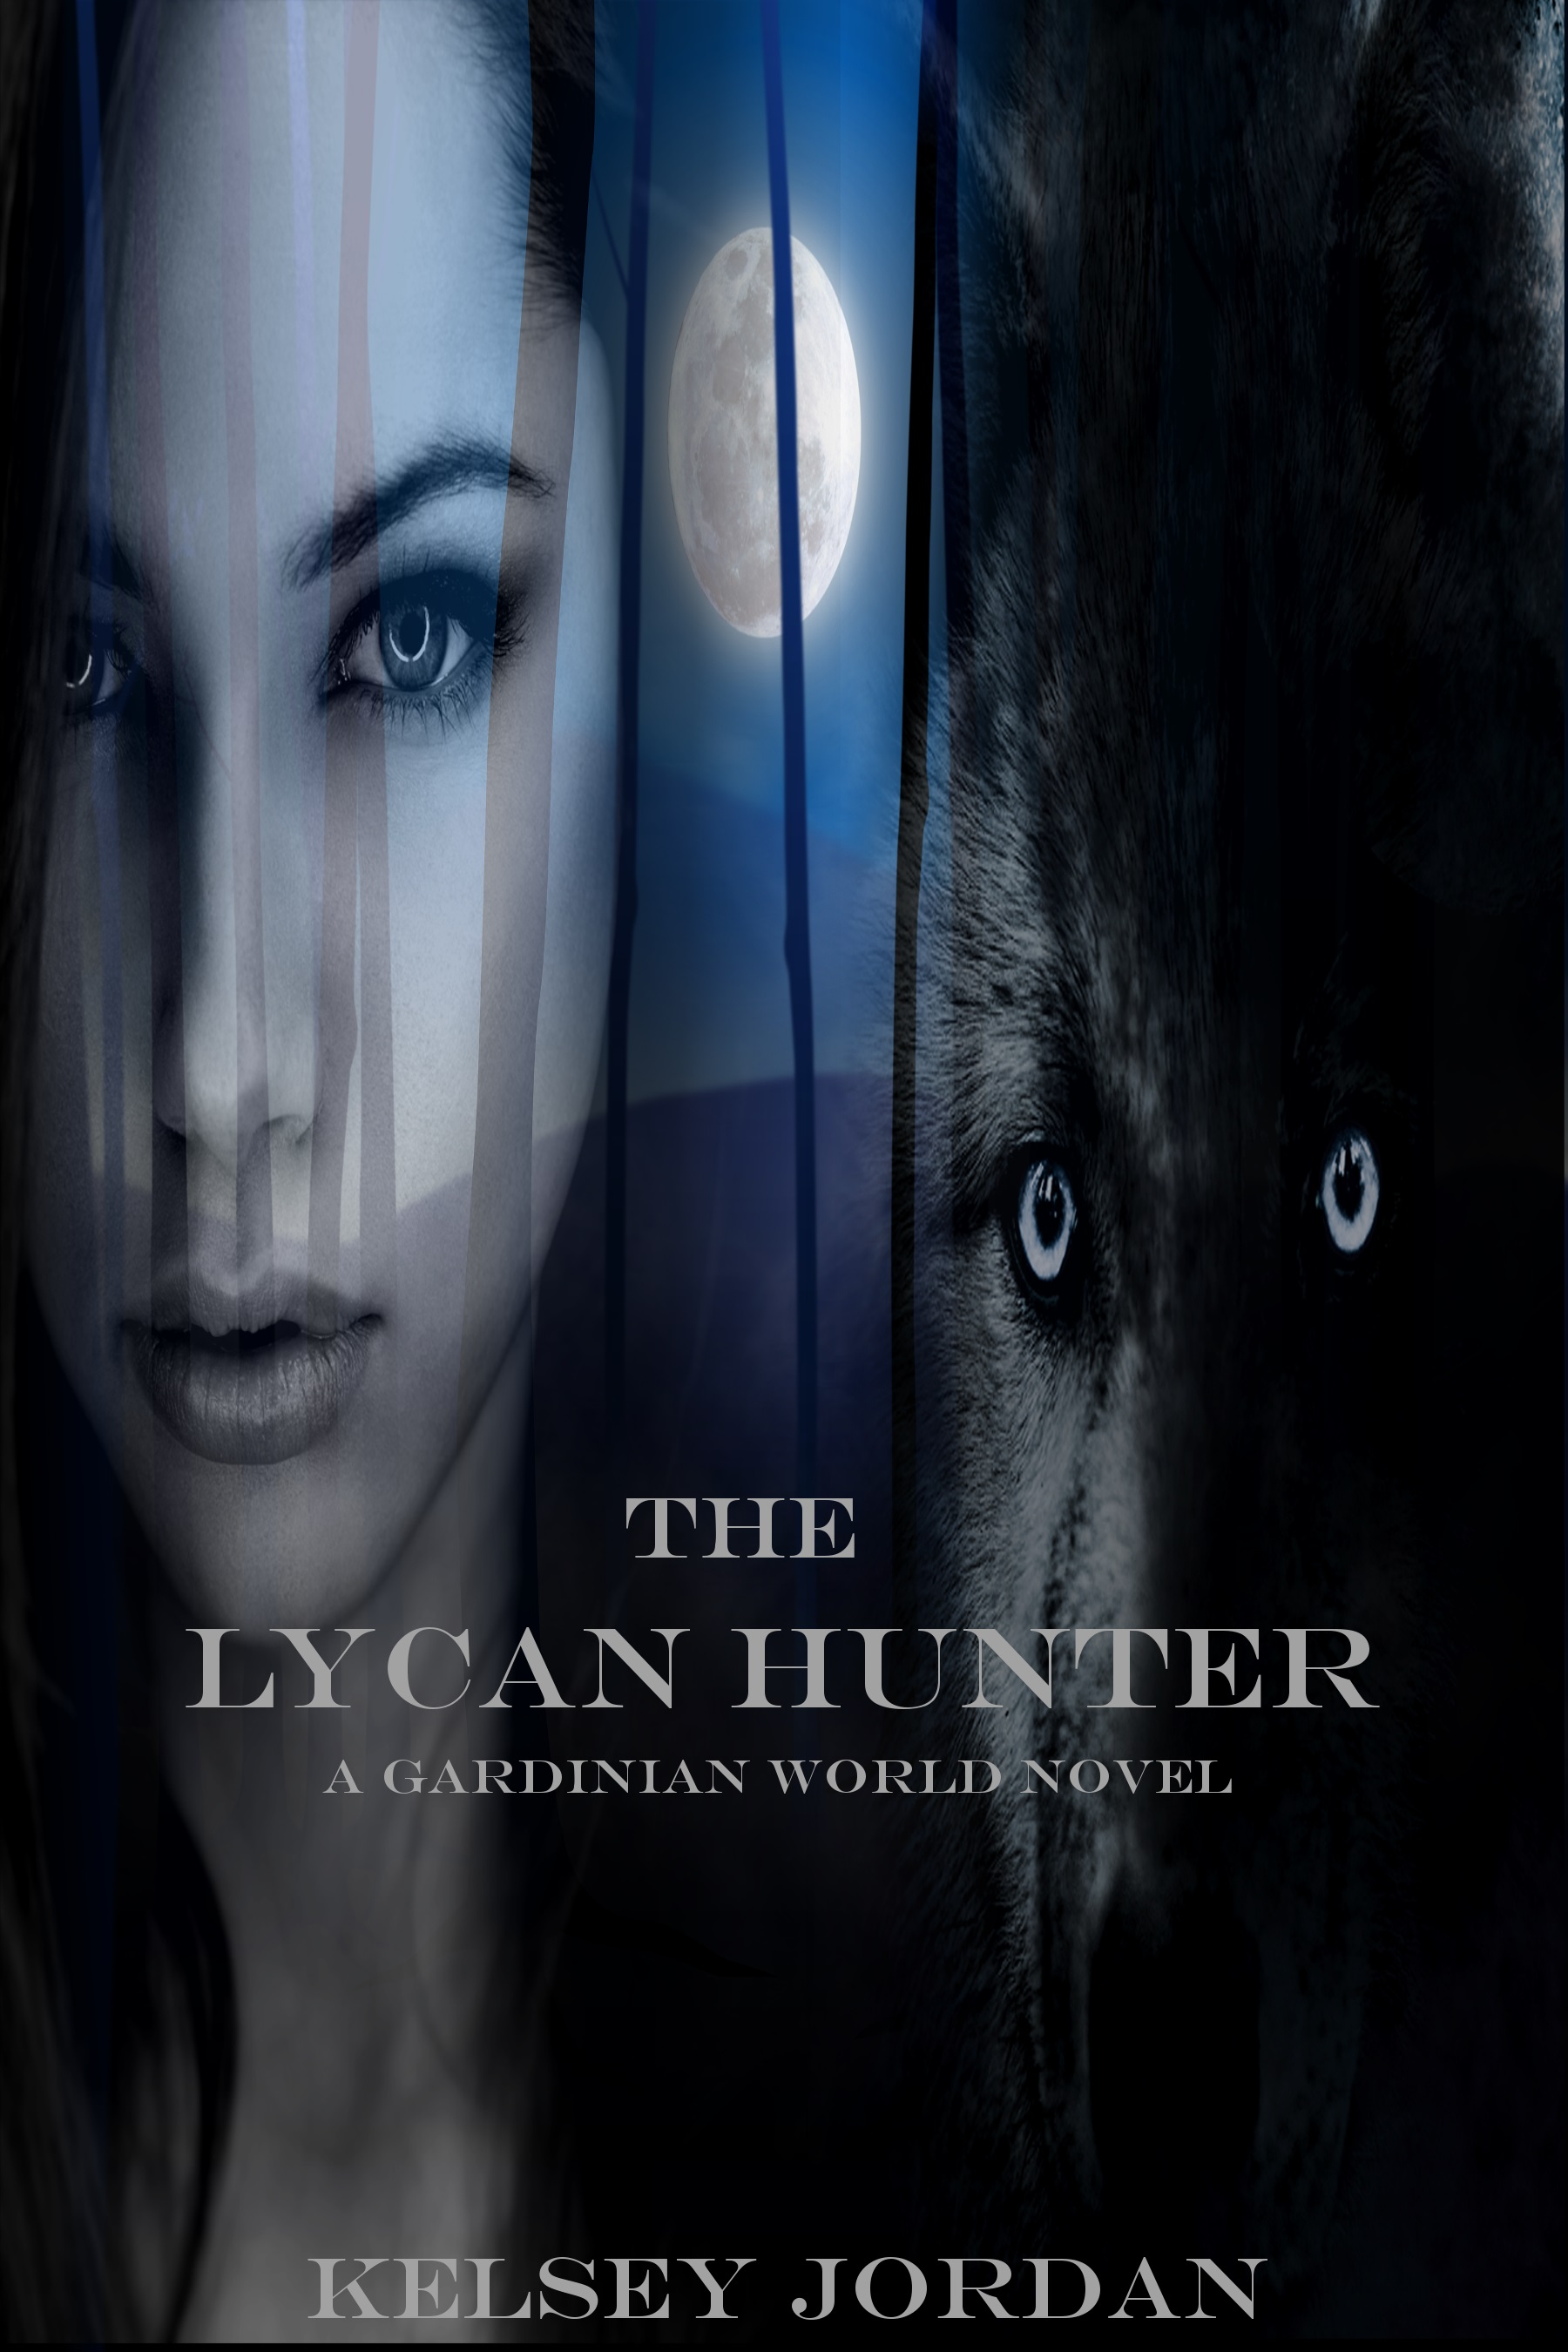 The Lycan Hunter Book Cover 2 6x9-2